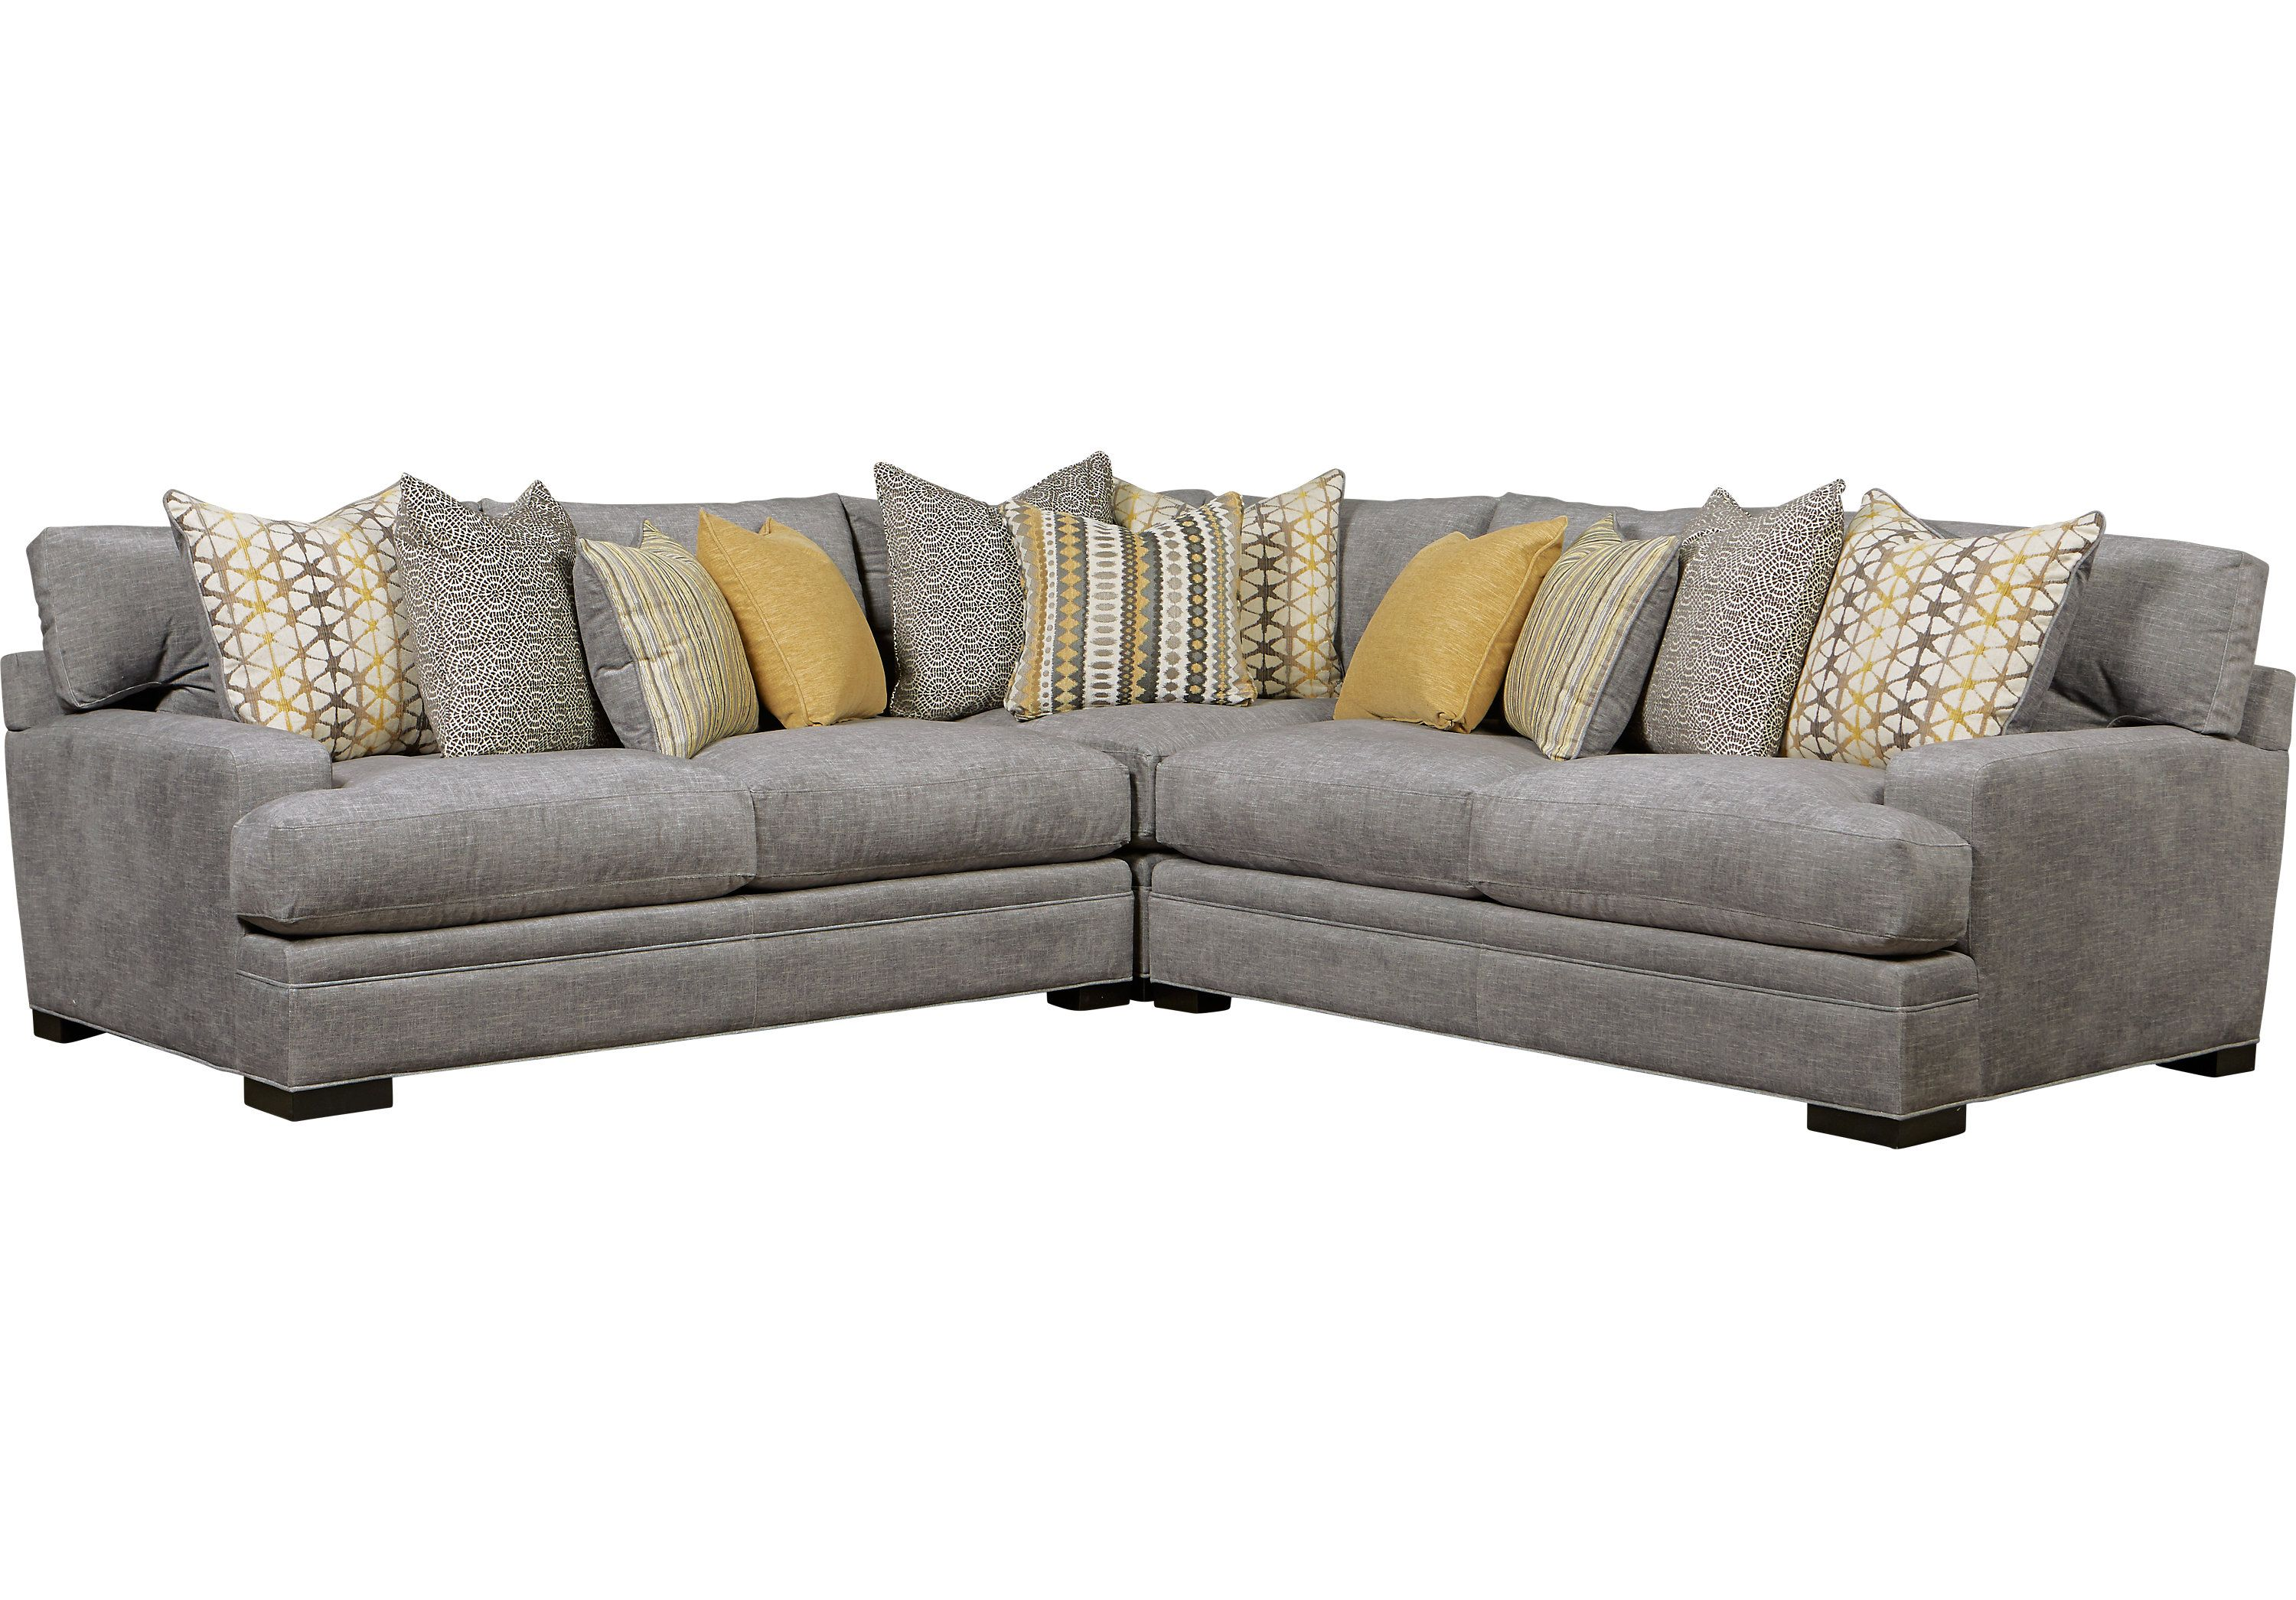 Cindy Crawford Home Palm Springs Gray 3 Pc Sectional Sofas